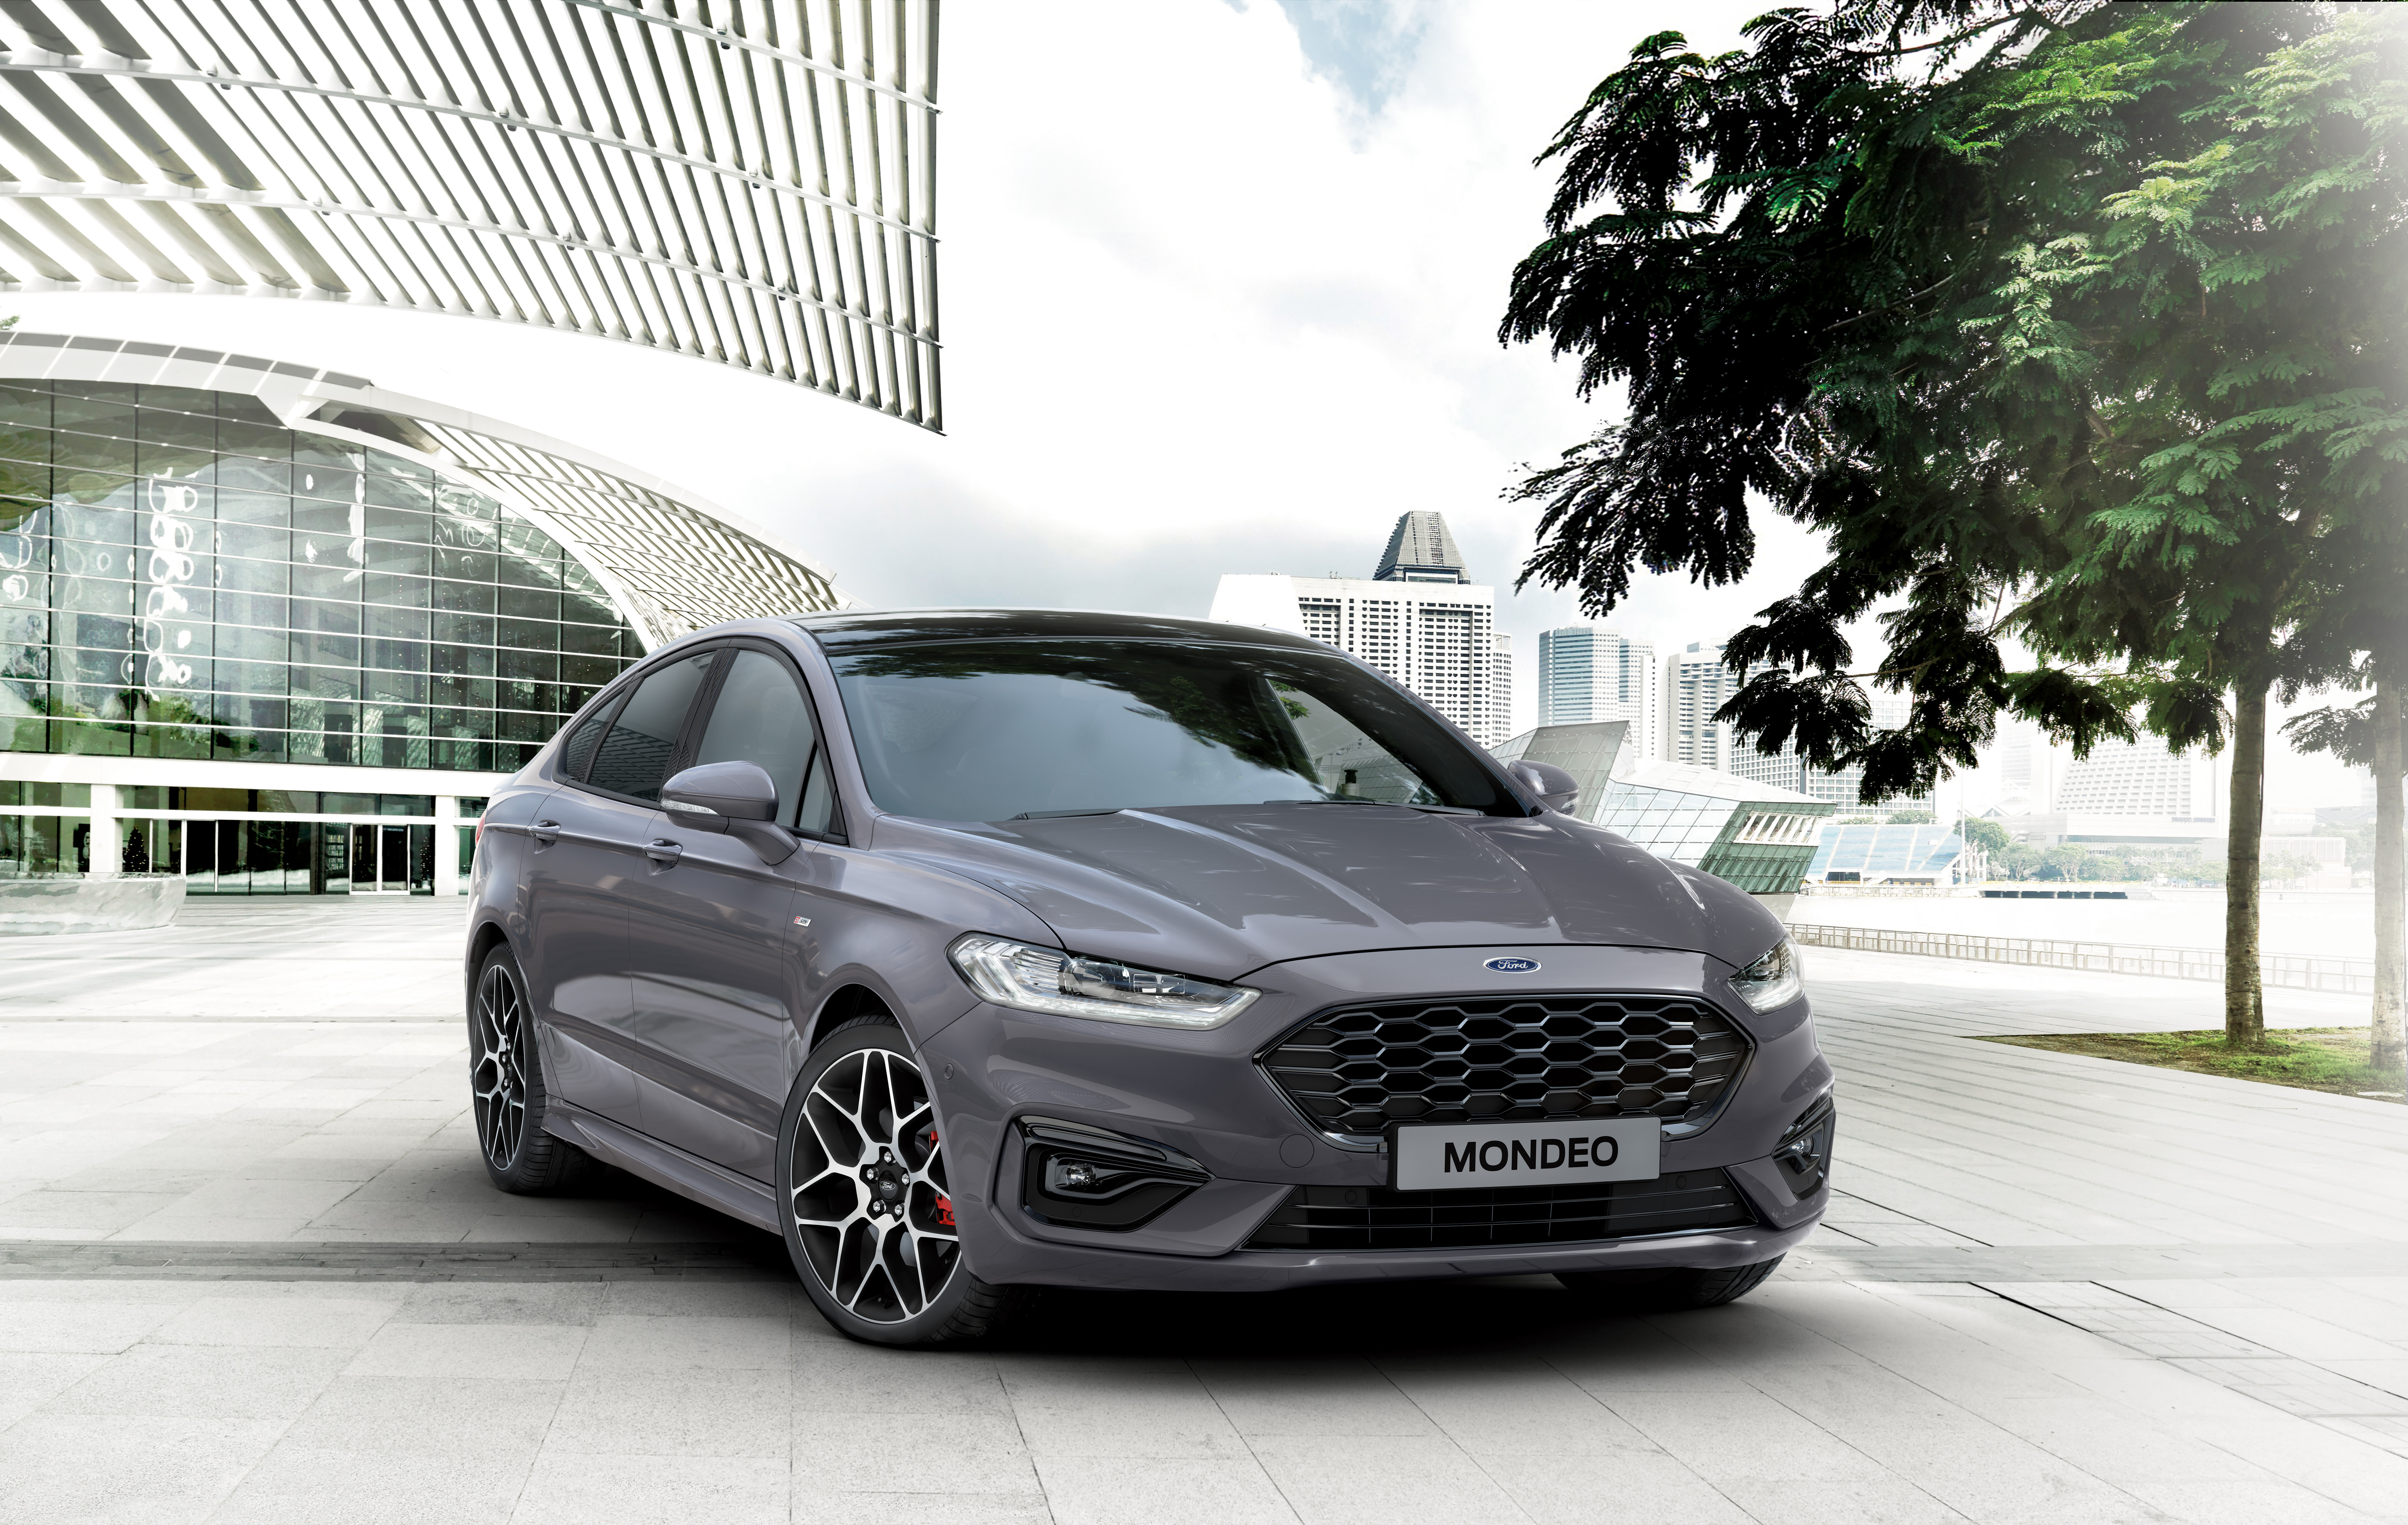 65 New 2020 Ford Mondeo Release